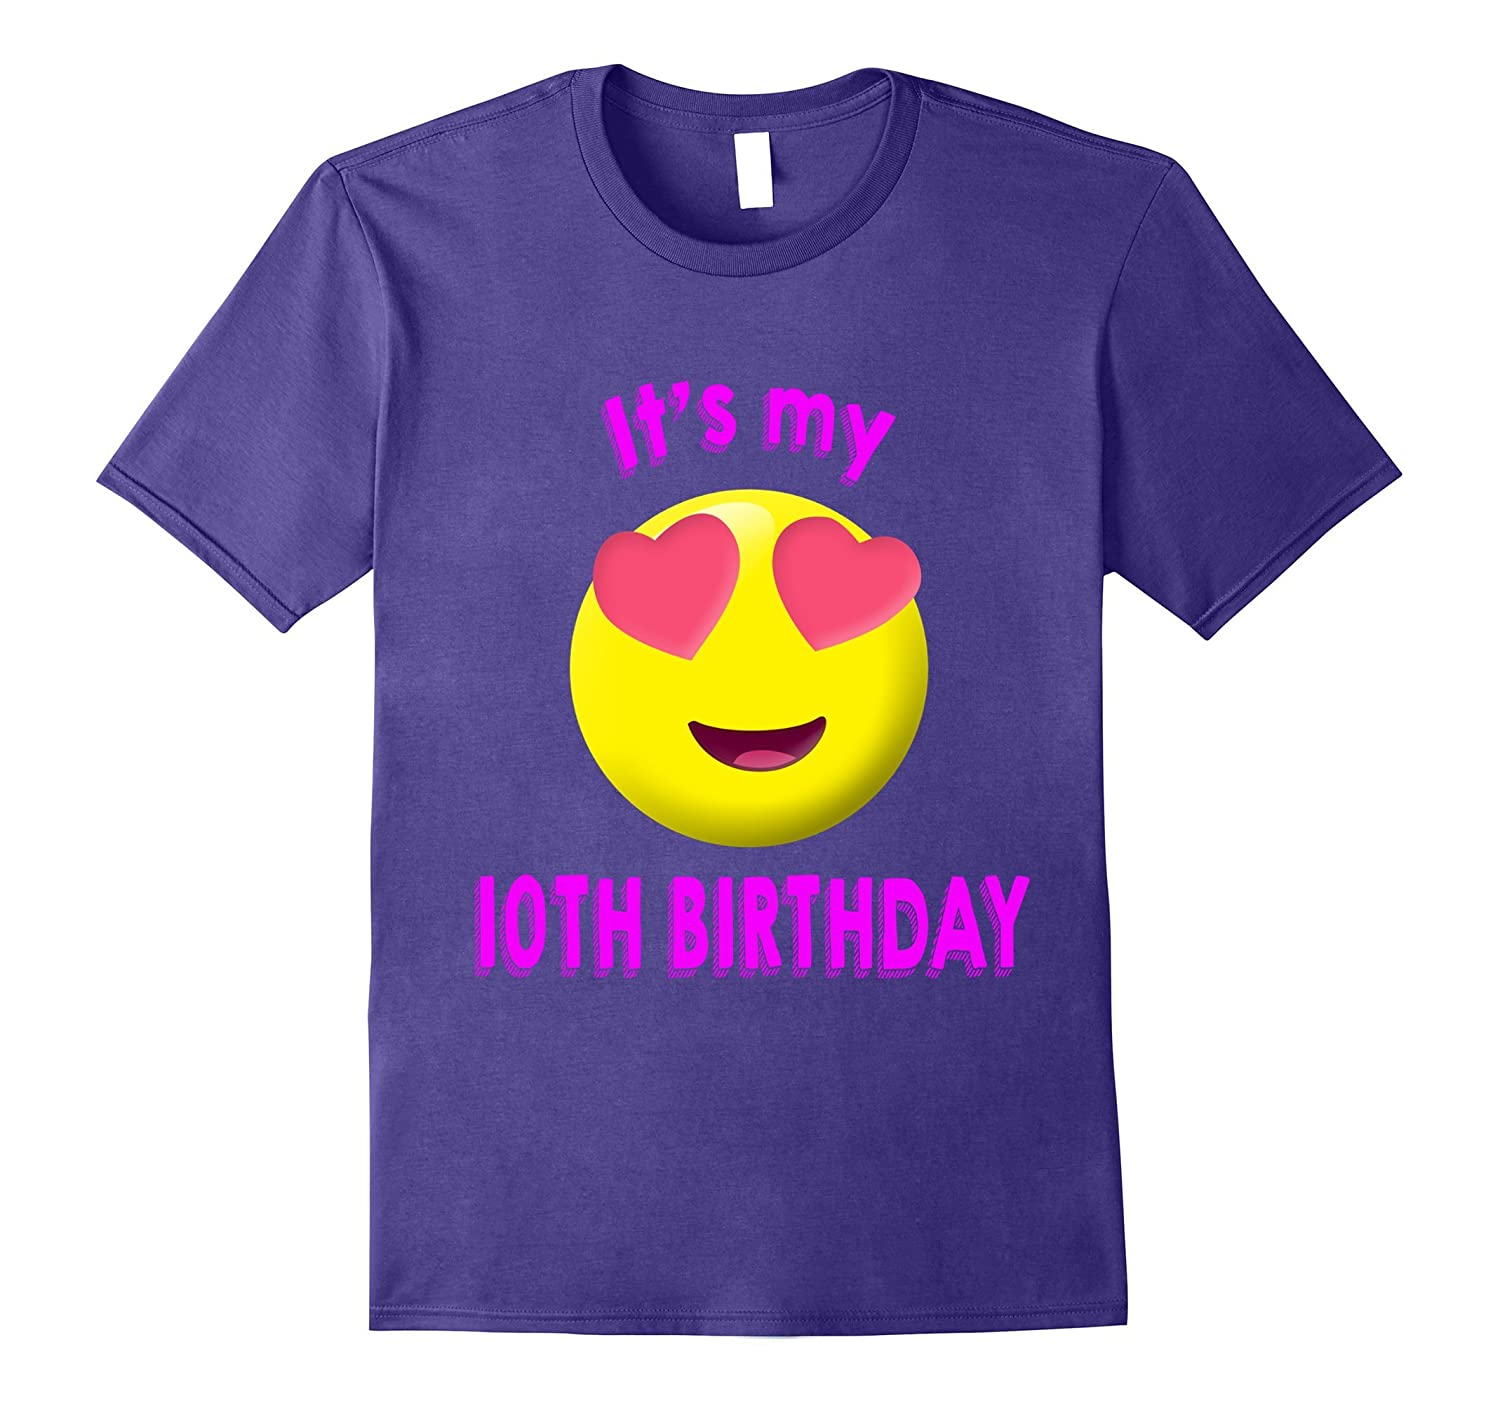 10th birthday emoji It's my 10th birthday-ah my shirt one gift